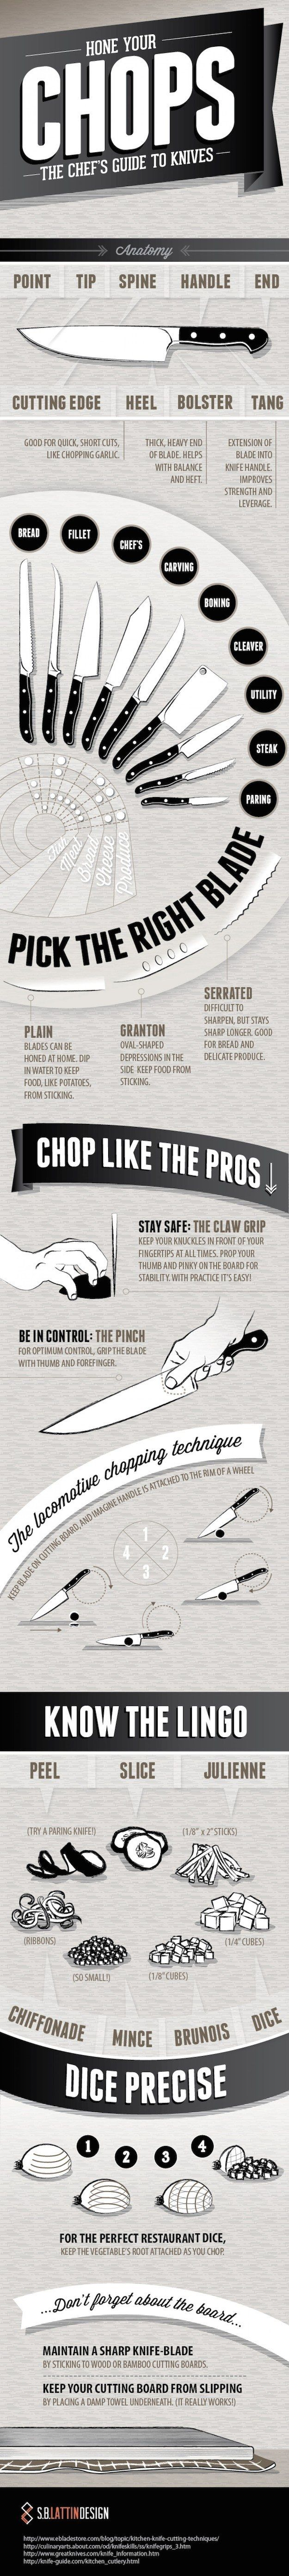 how to handle a knife properly and safely. 1 Always hold knife by the grip, 2. never run with knife, 3. Never put knife in the water with other dishes